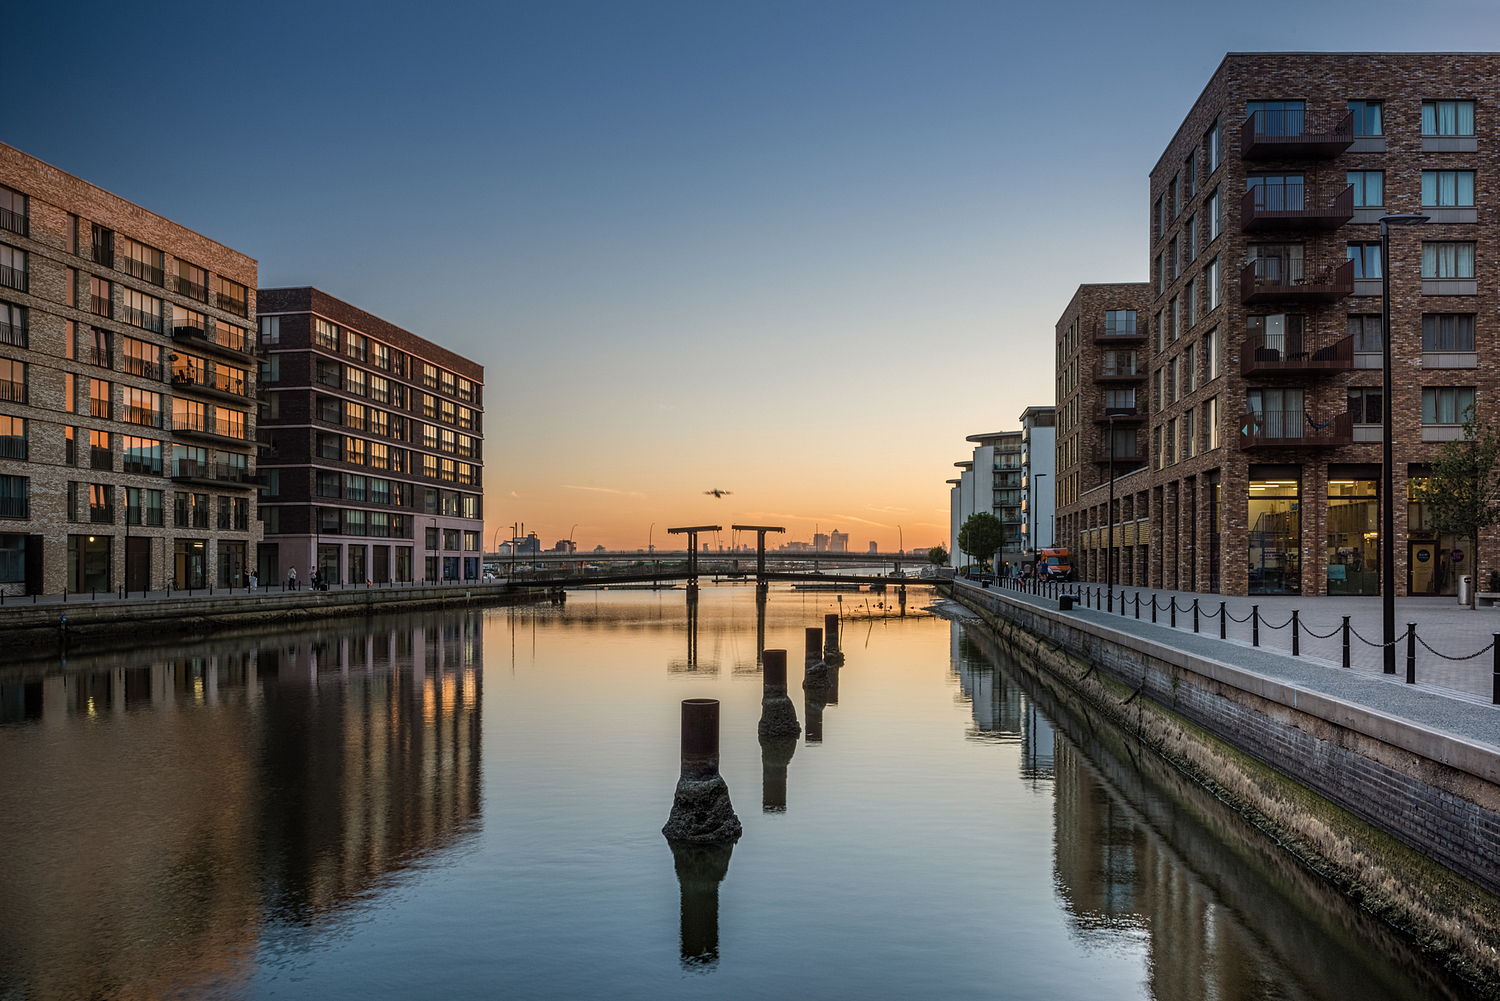 Royal Albert Wharf at dusk, London